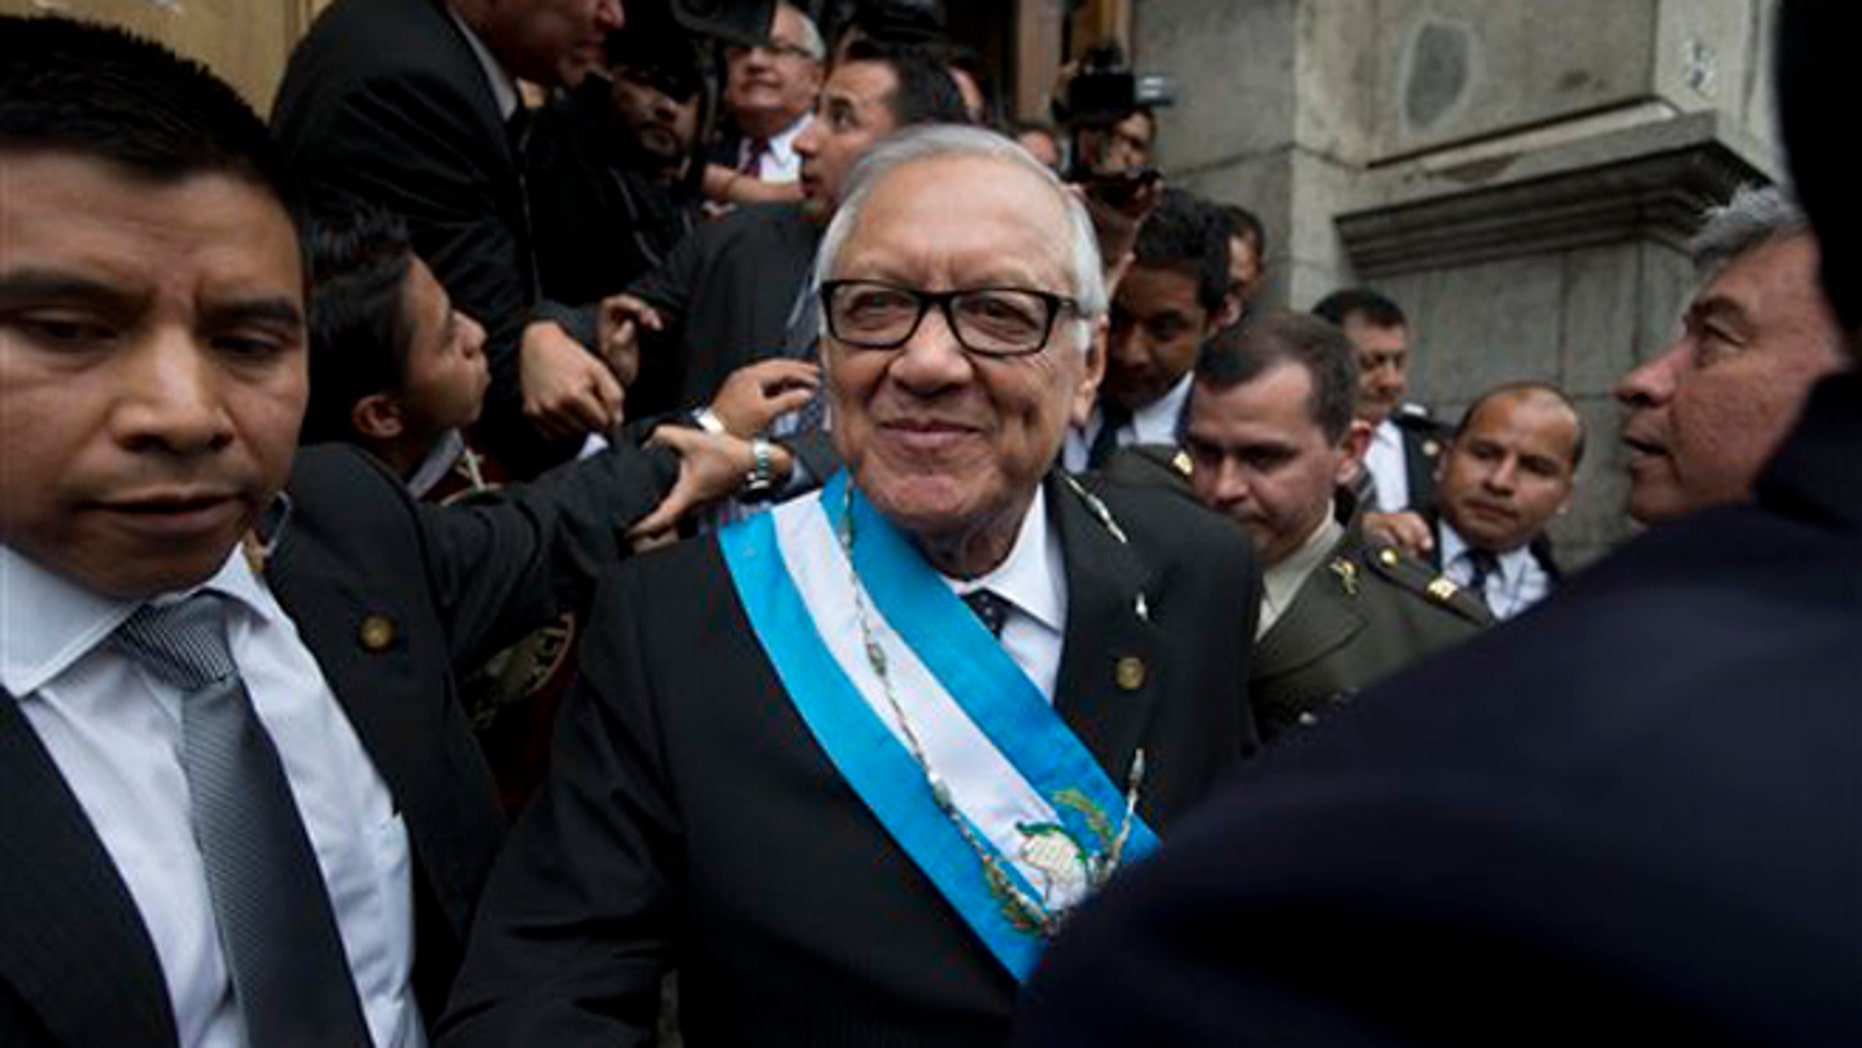 Sept. 3, 2015: Guatemala's new President Alejandro Maldonado leaves the Congress building after his swearing-in ceremony in Guatemala City.